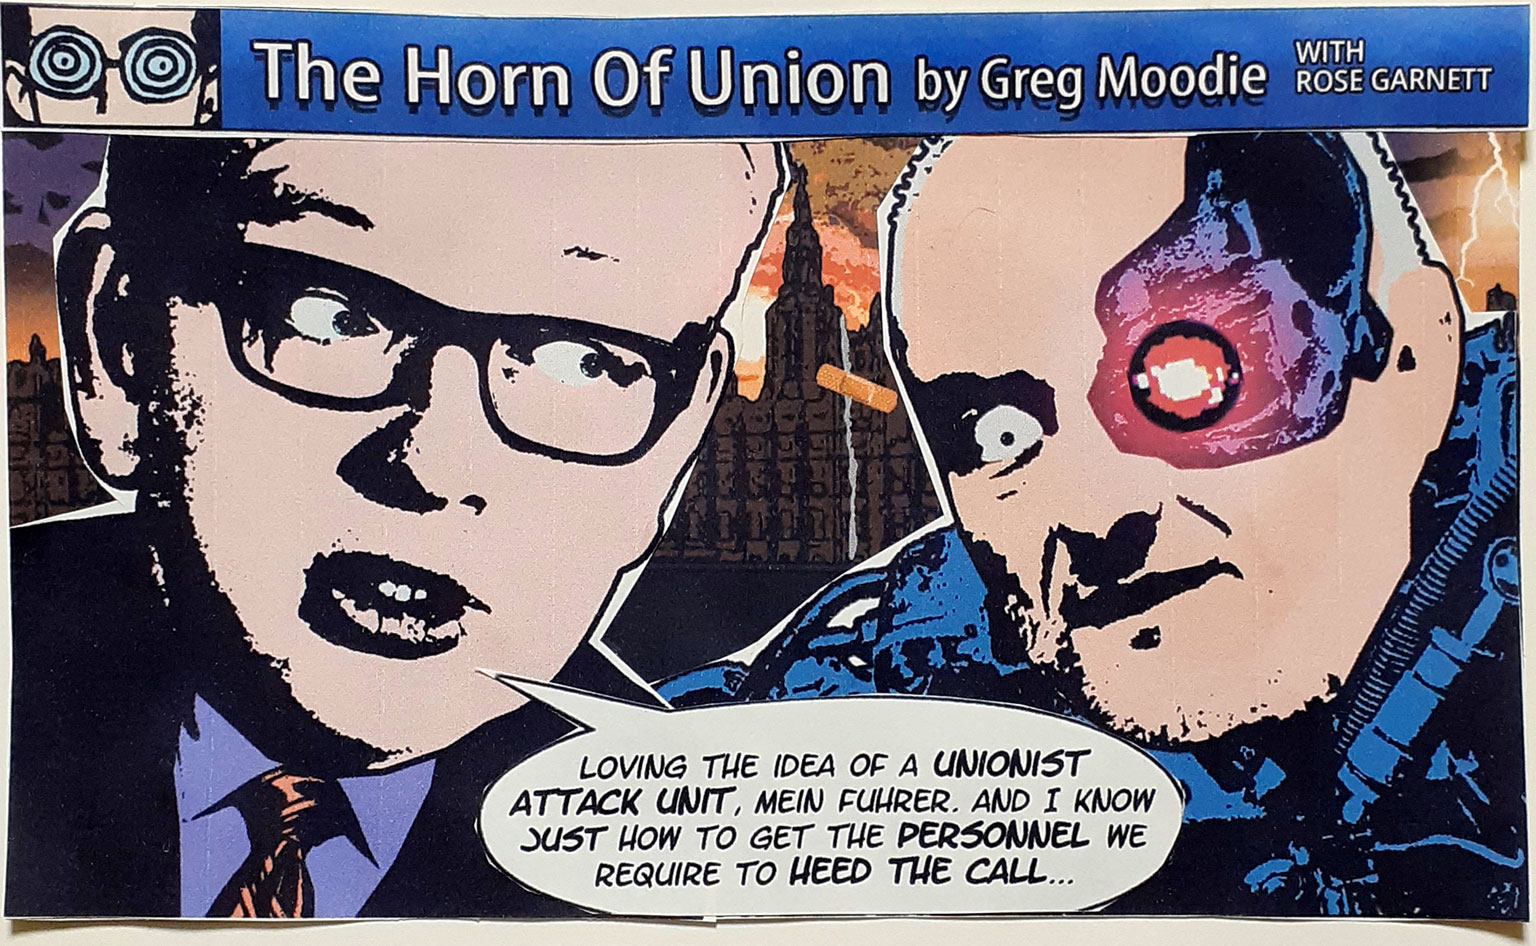 The Horn Of Union